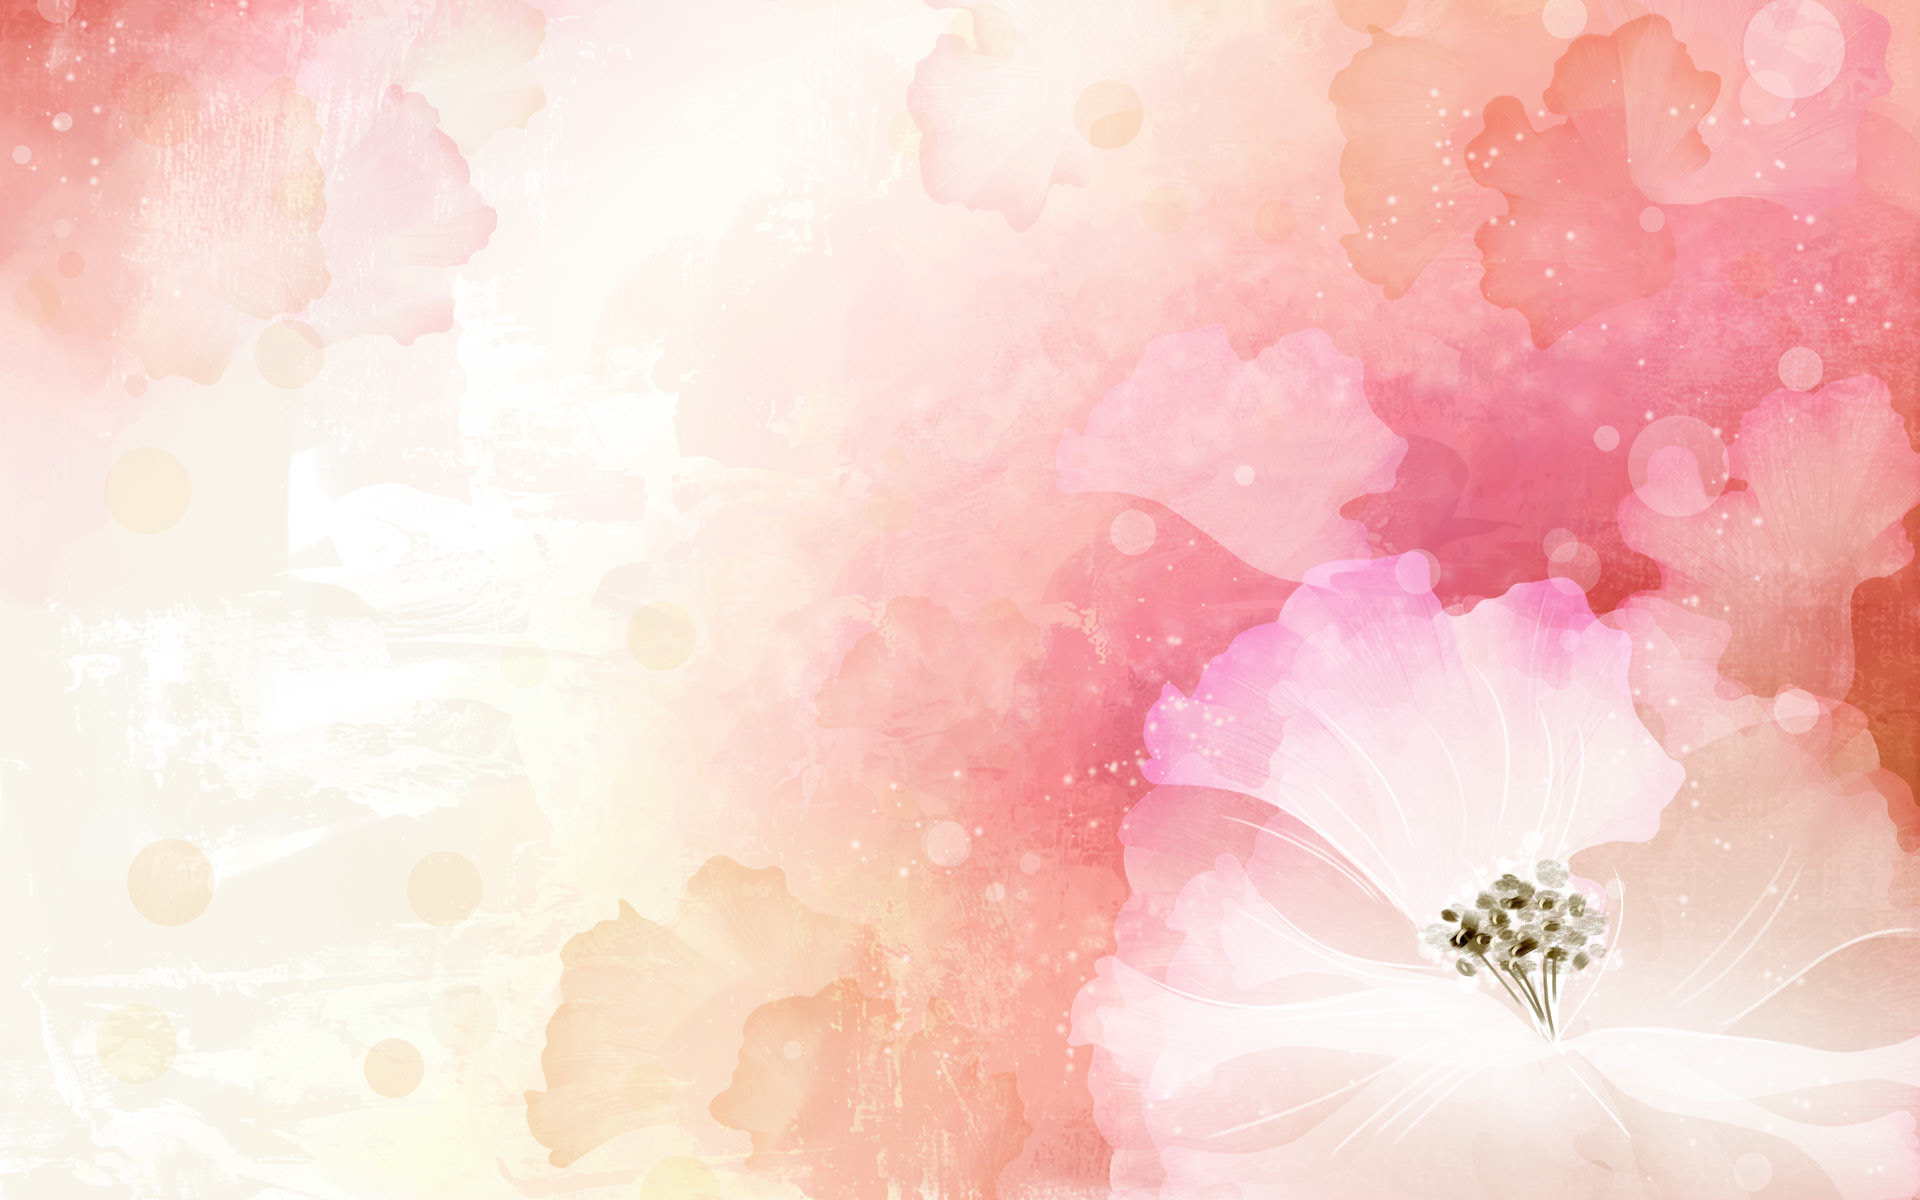 Download 7600 Koleksi Background Art Flower Hd HD Terbaik